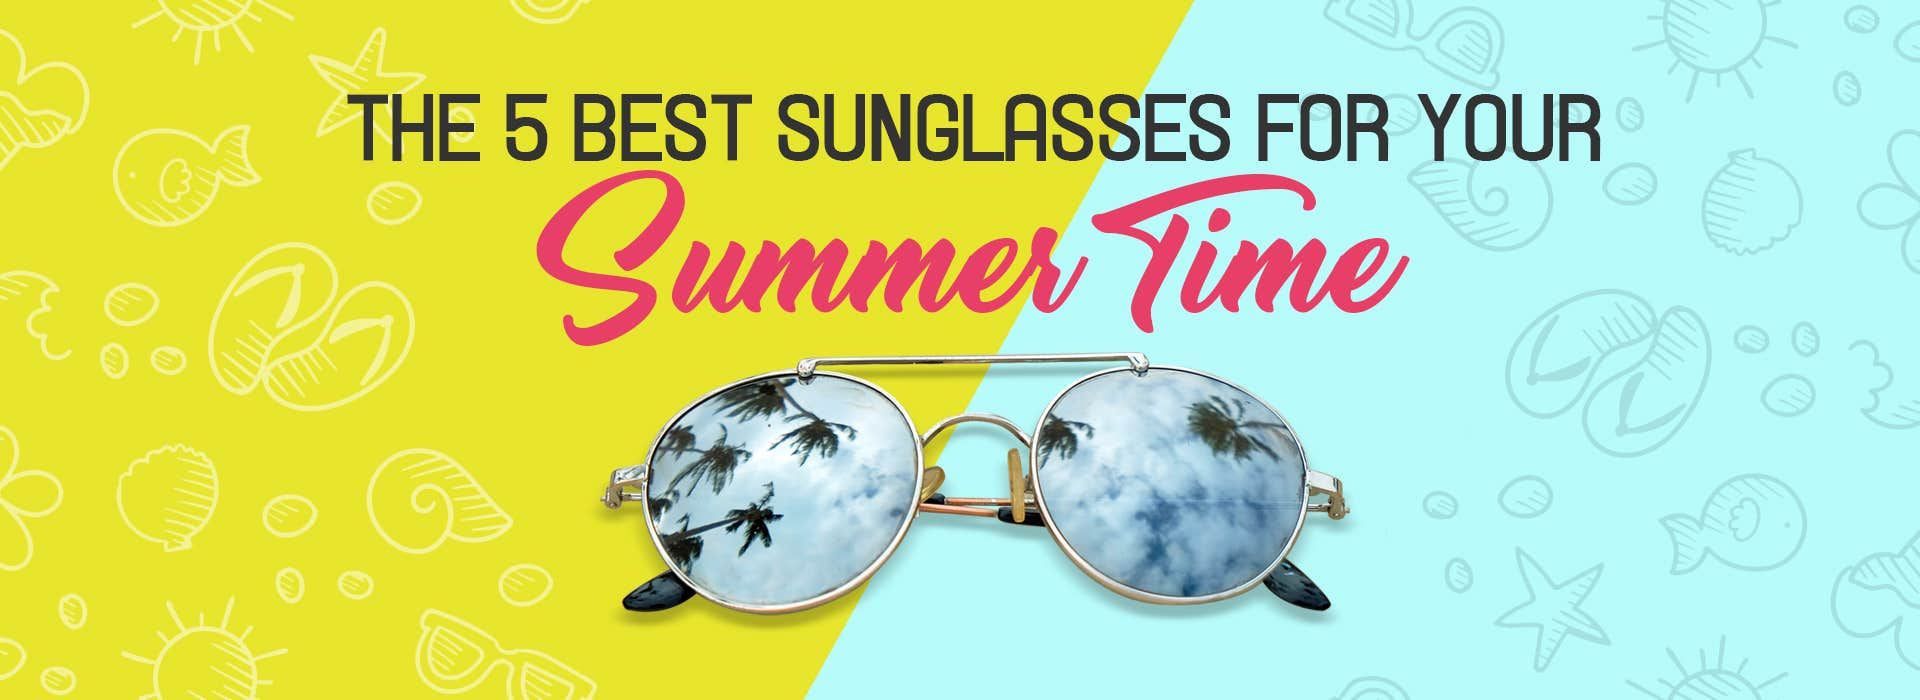 The 5 Best Sunglasses For Your Summertime